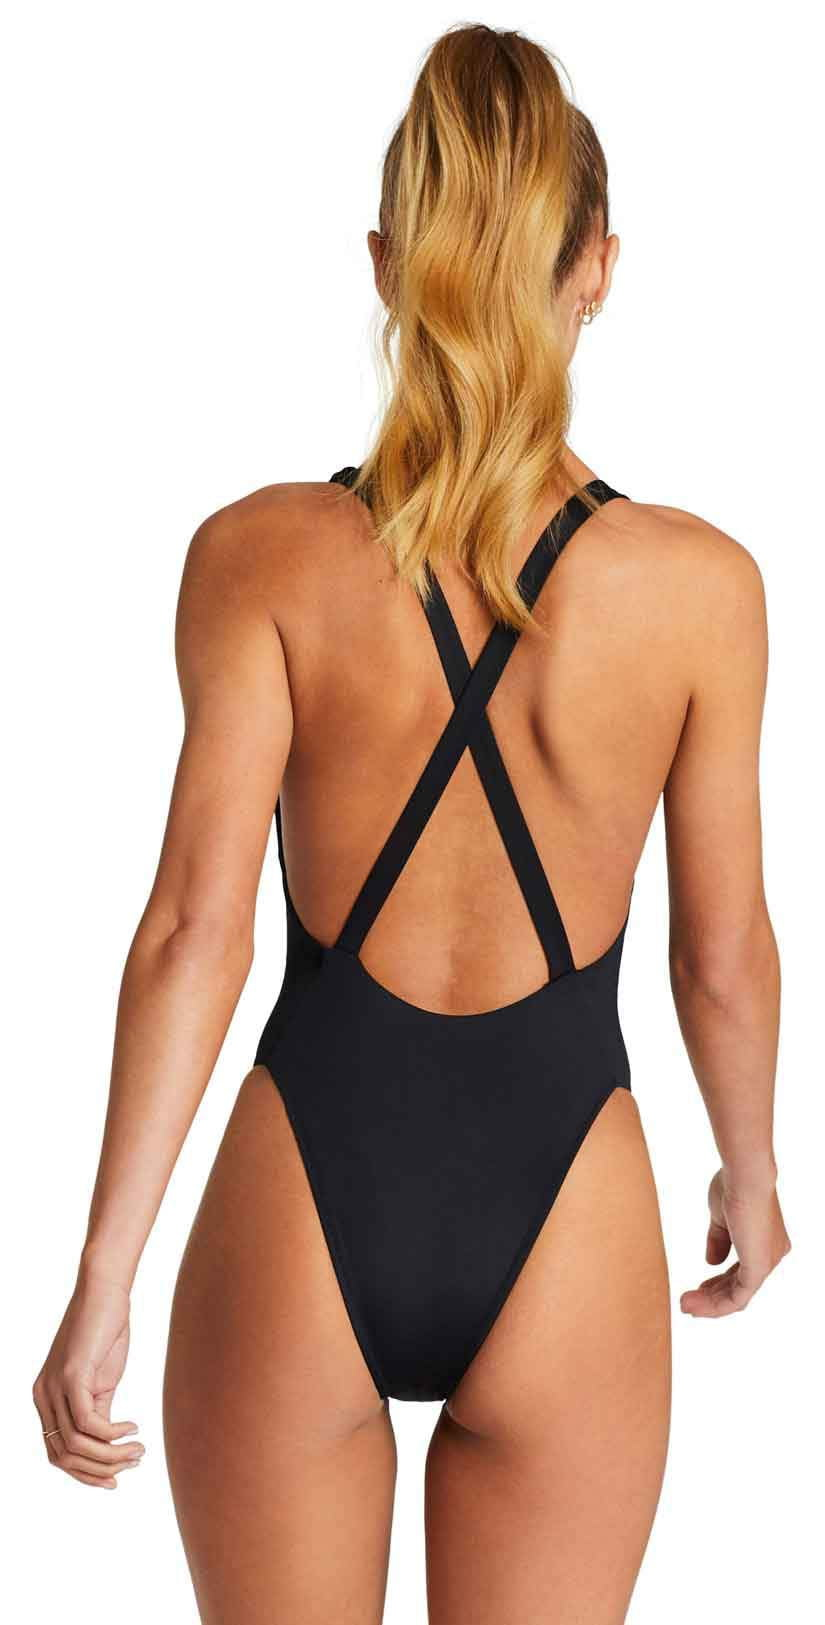 Vitamin A EcoLux Alana Bodysuit in Black: